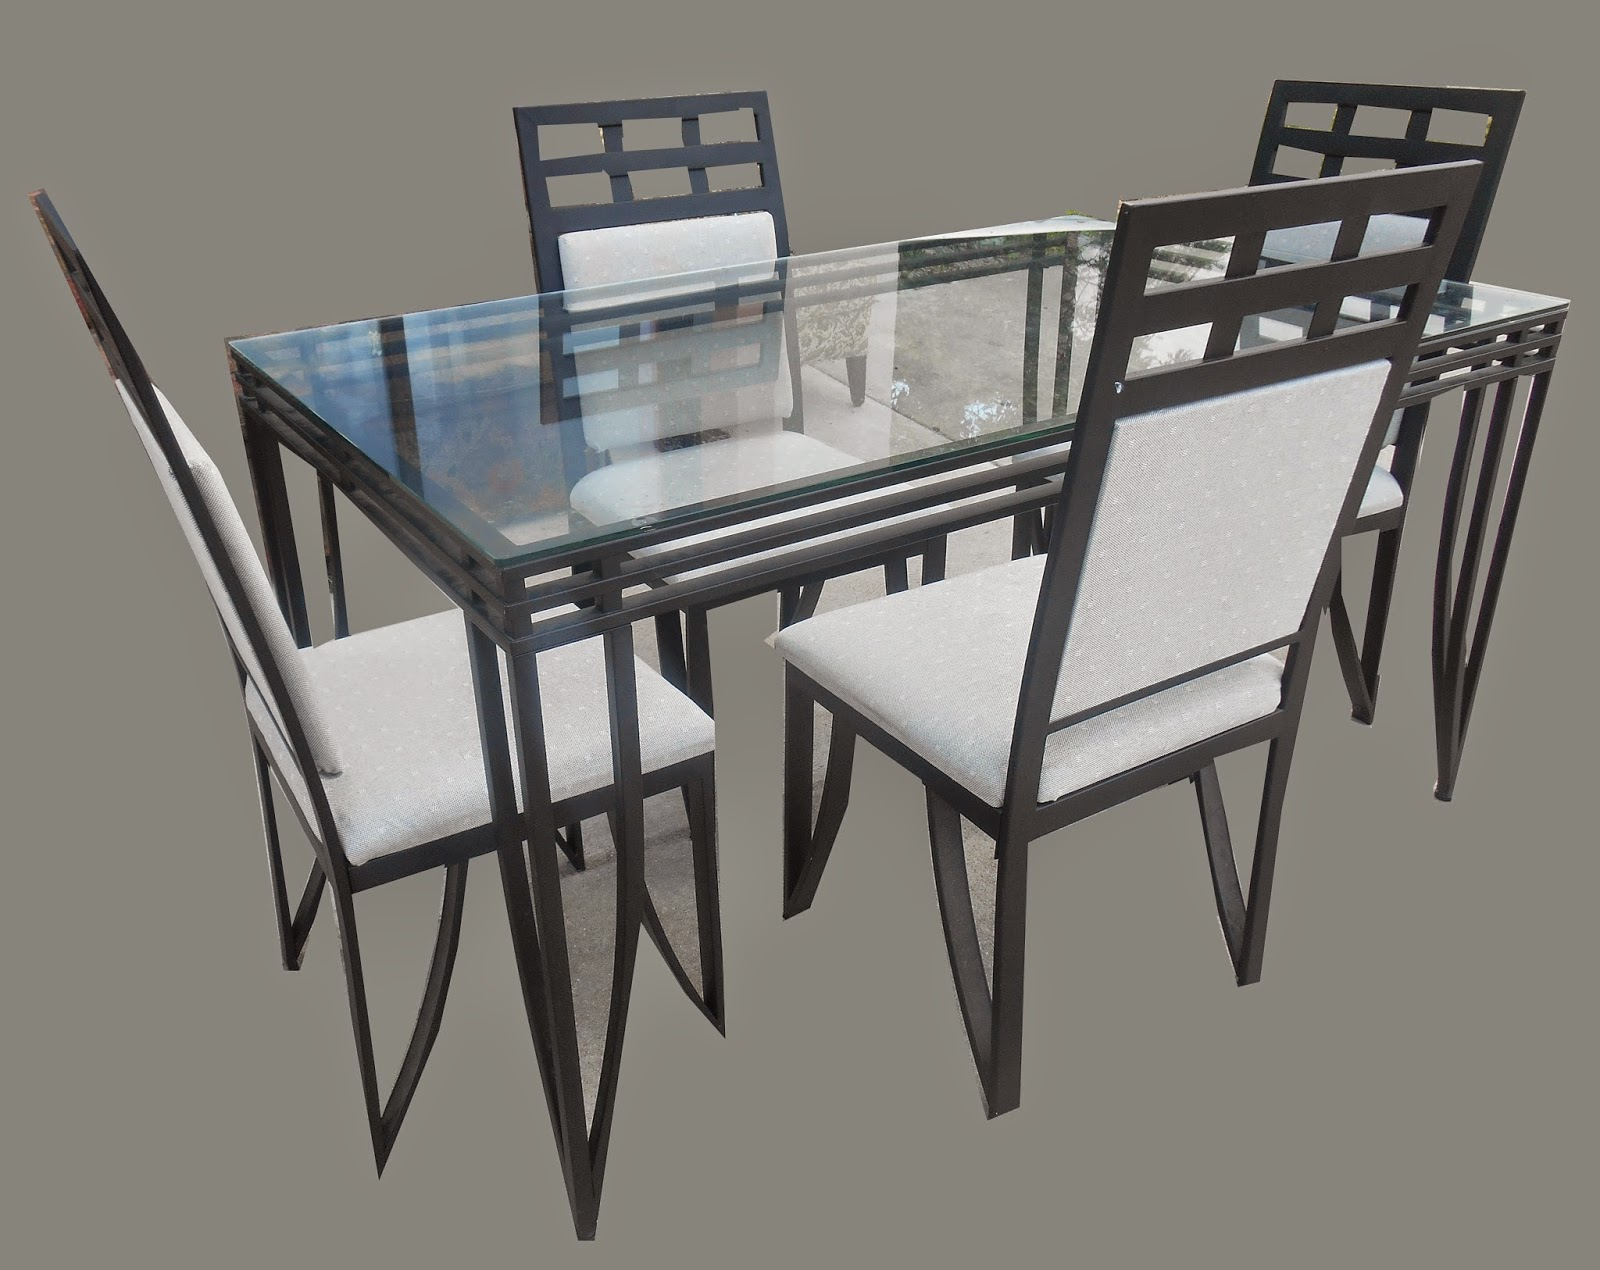 Metal Dining Chairs Ikea Room Chair Covers Argos Uhuru Furniture And Collectibles Glass Table